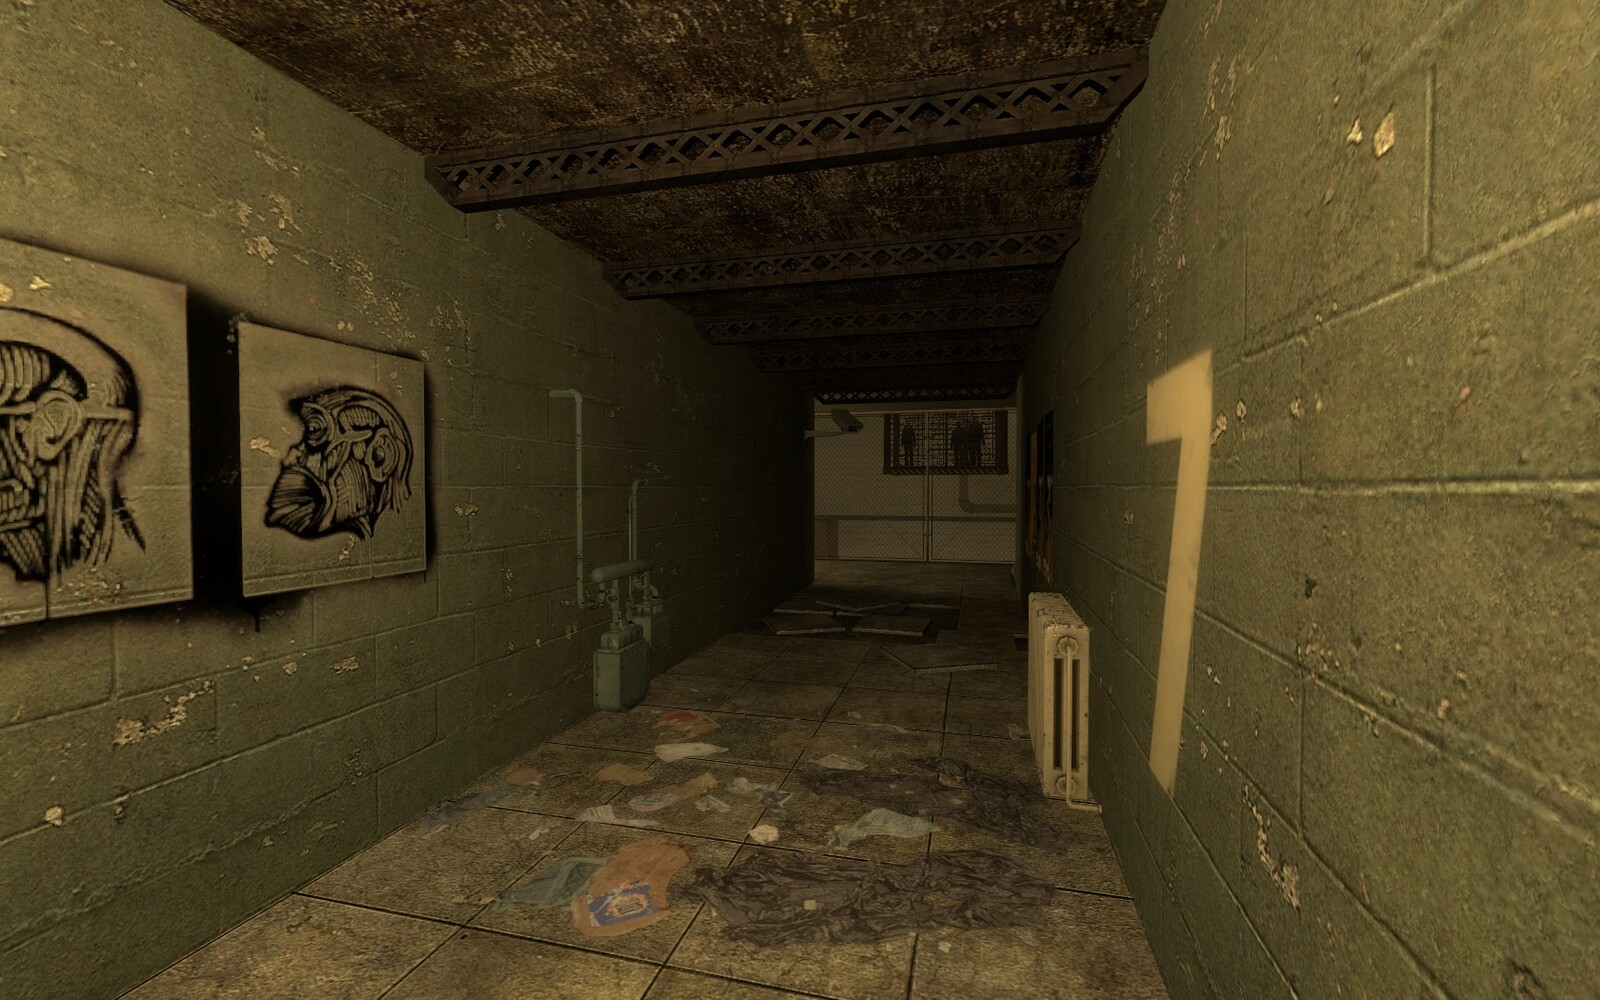 The intro hallway was designed to show the main goal of the level to the player as soon as the level began.